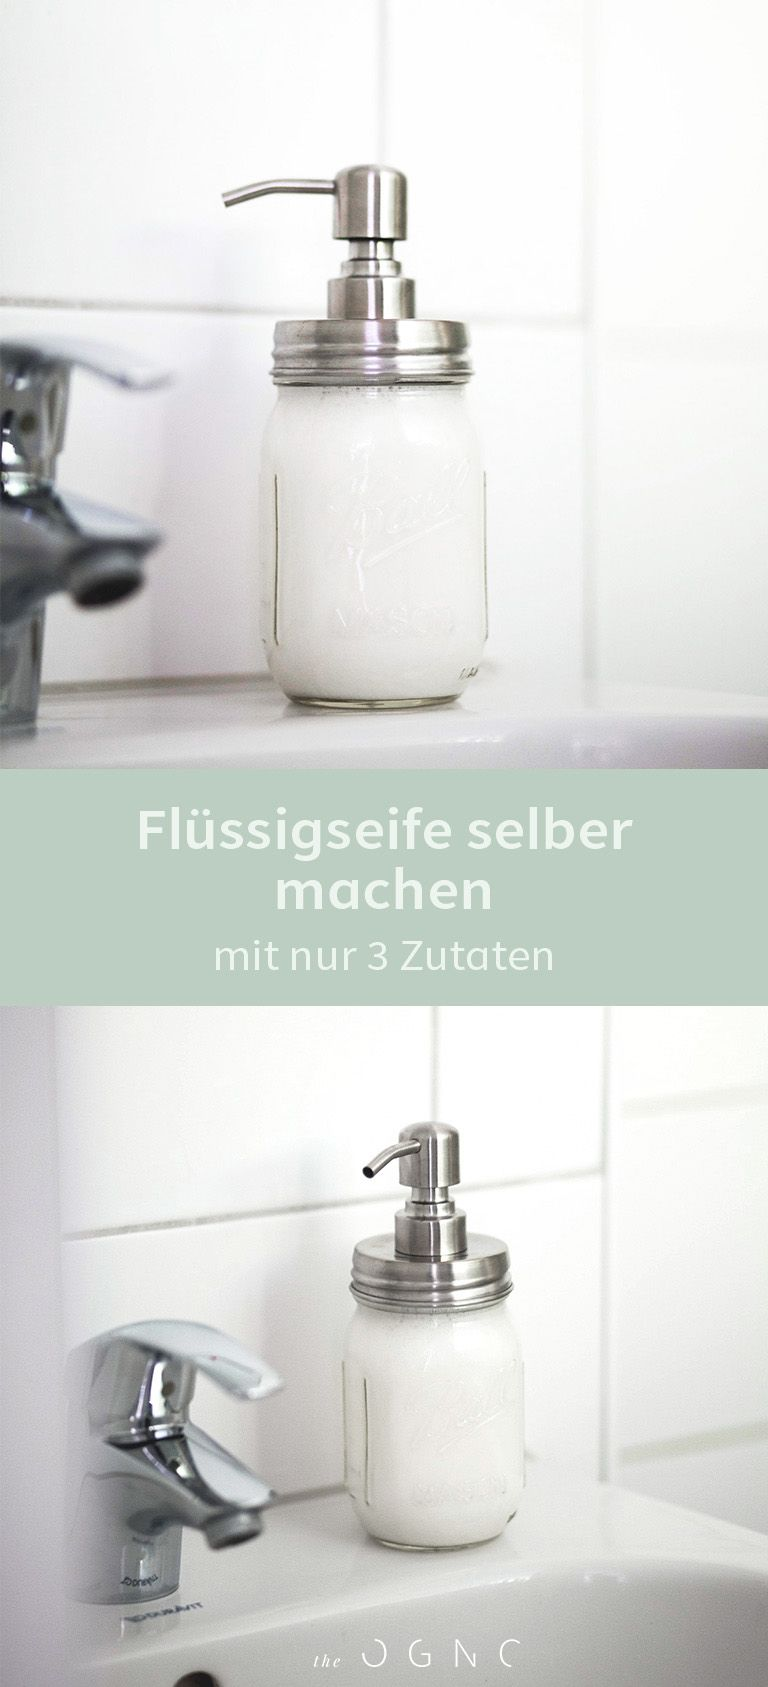 nachhaltigkeit im badezimmer fl ssigseife selber machen zero waste fl ssigseife selber. Black Bedroom Furniture Sets. Home Design Ideas